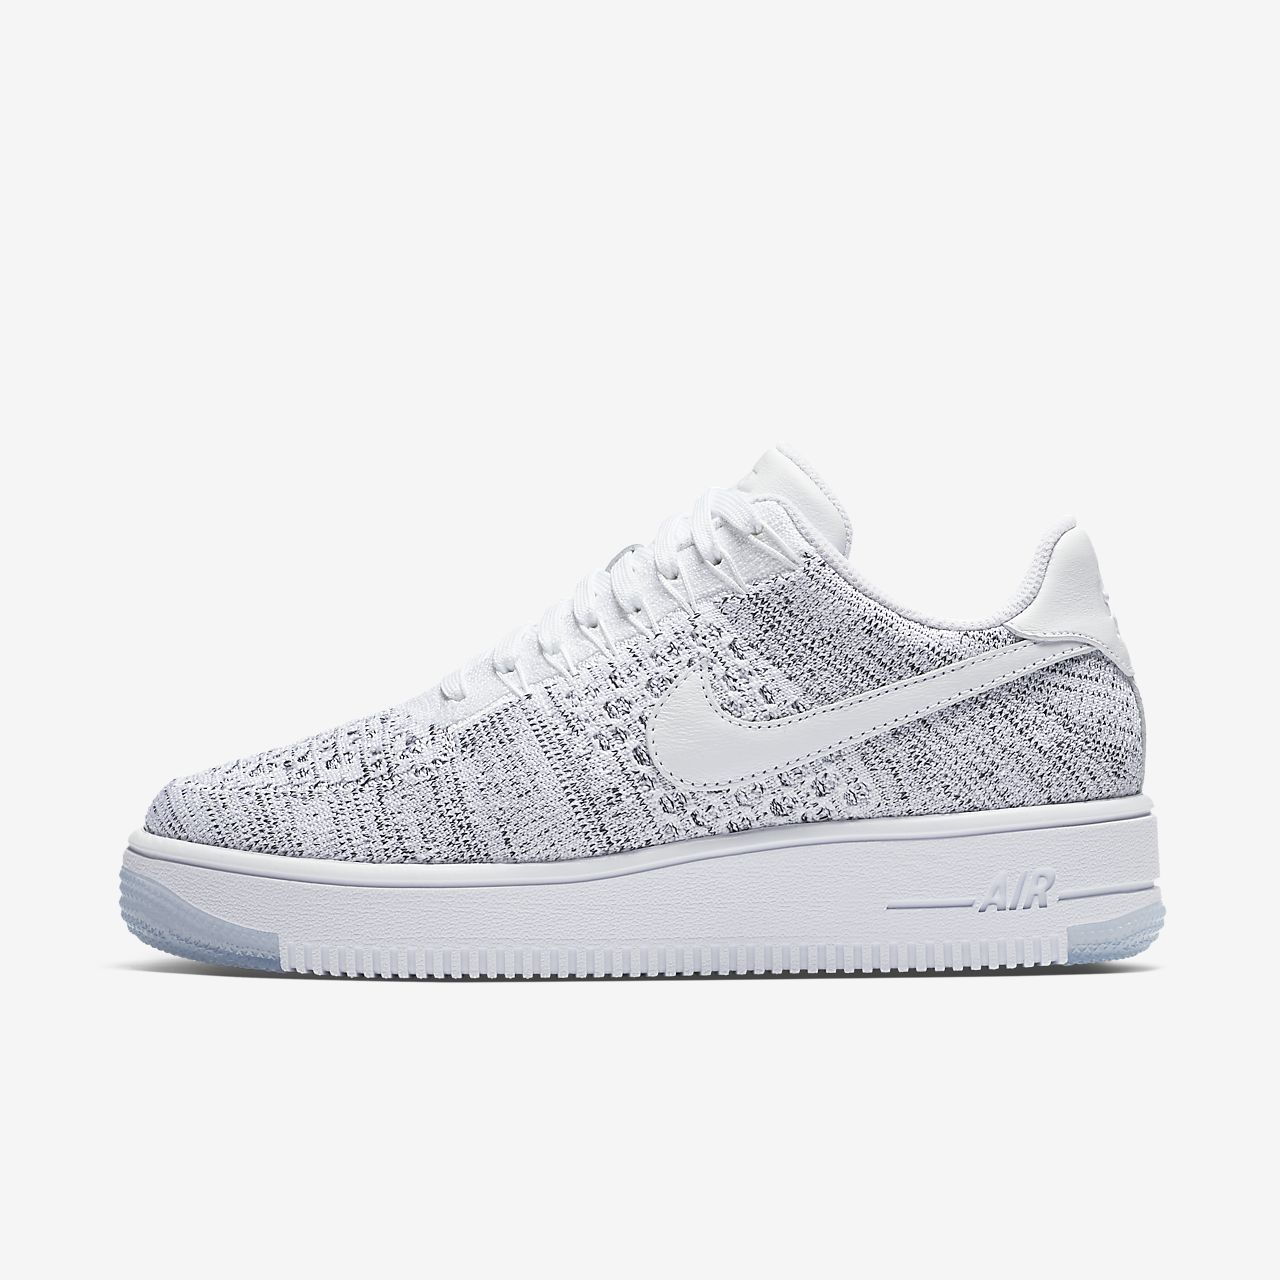 air force 1 shoes nz